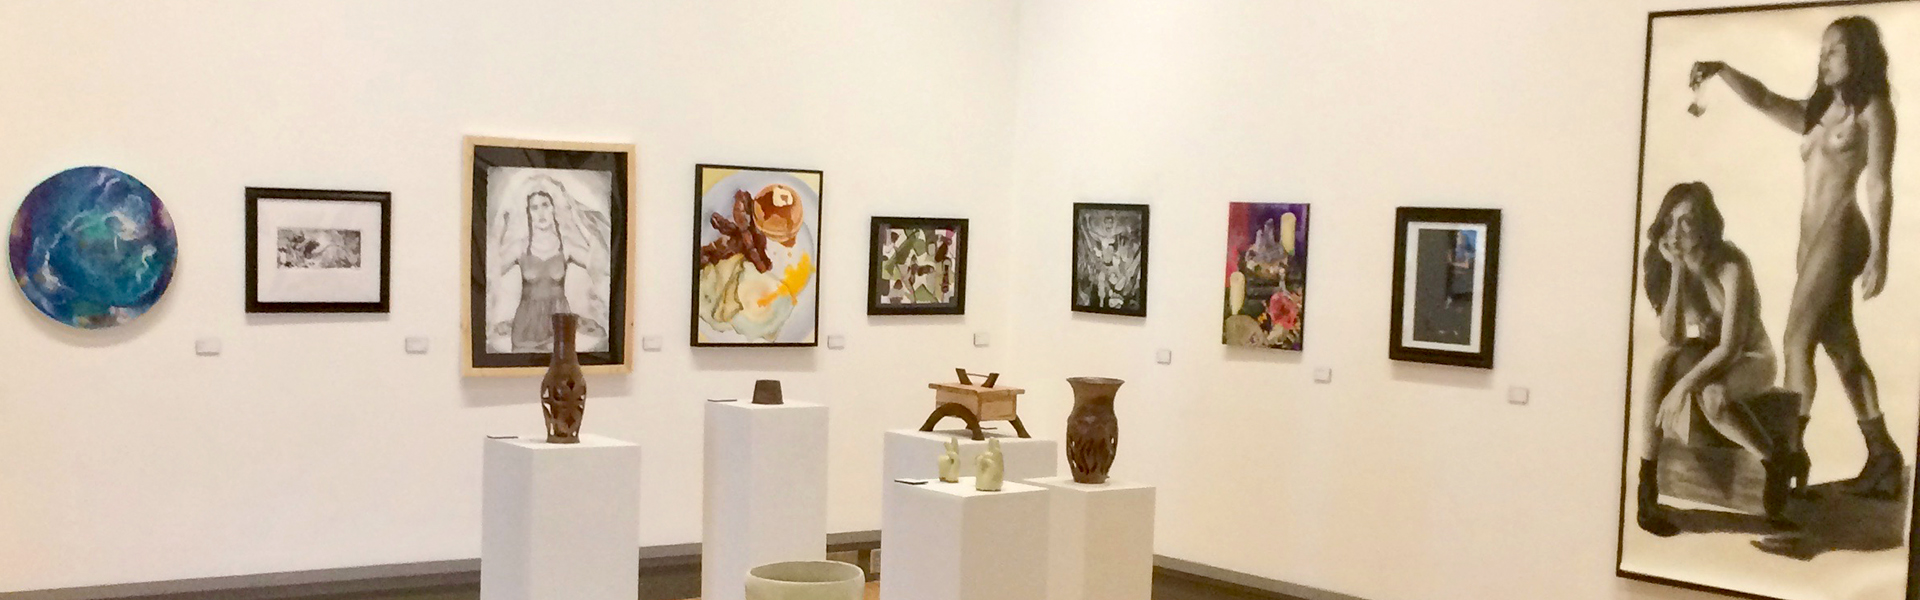 View of McCutchan/Pace gallery, with student art pieces on display such as painting, sculpture